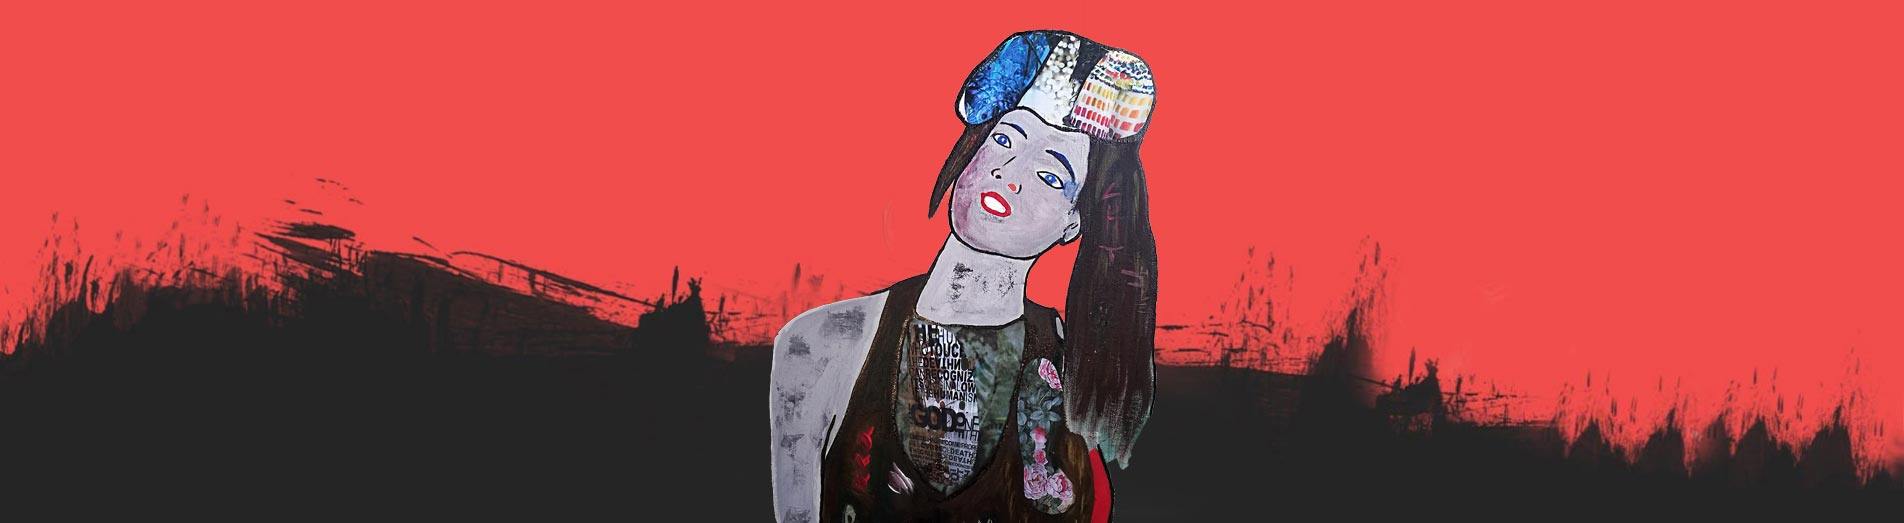 Miss 2020, mixed media, acrylic paint and collage on canvas, original artwork, dimensions: 80x60 cm, patrick Joosten,